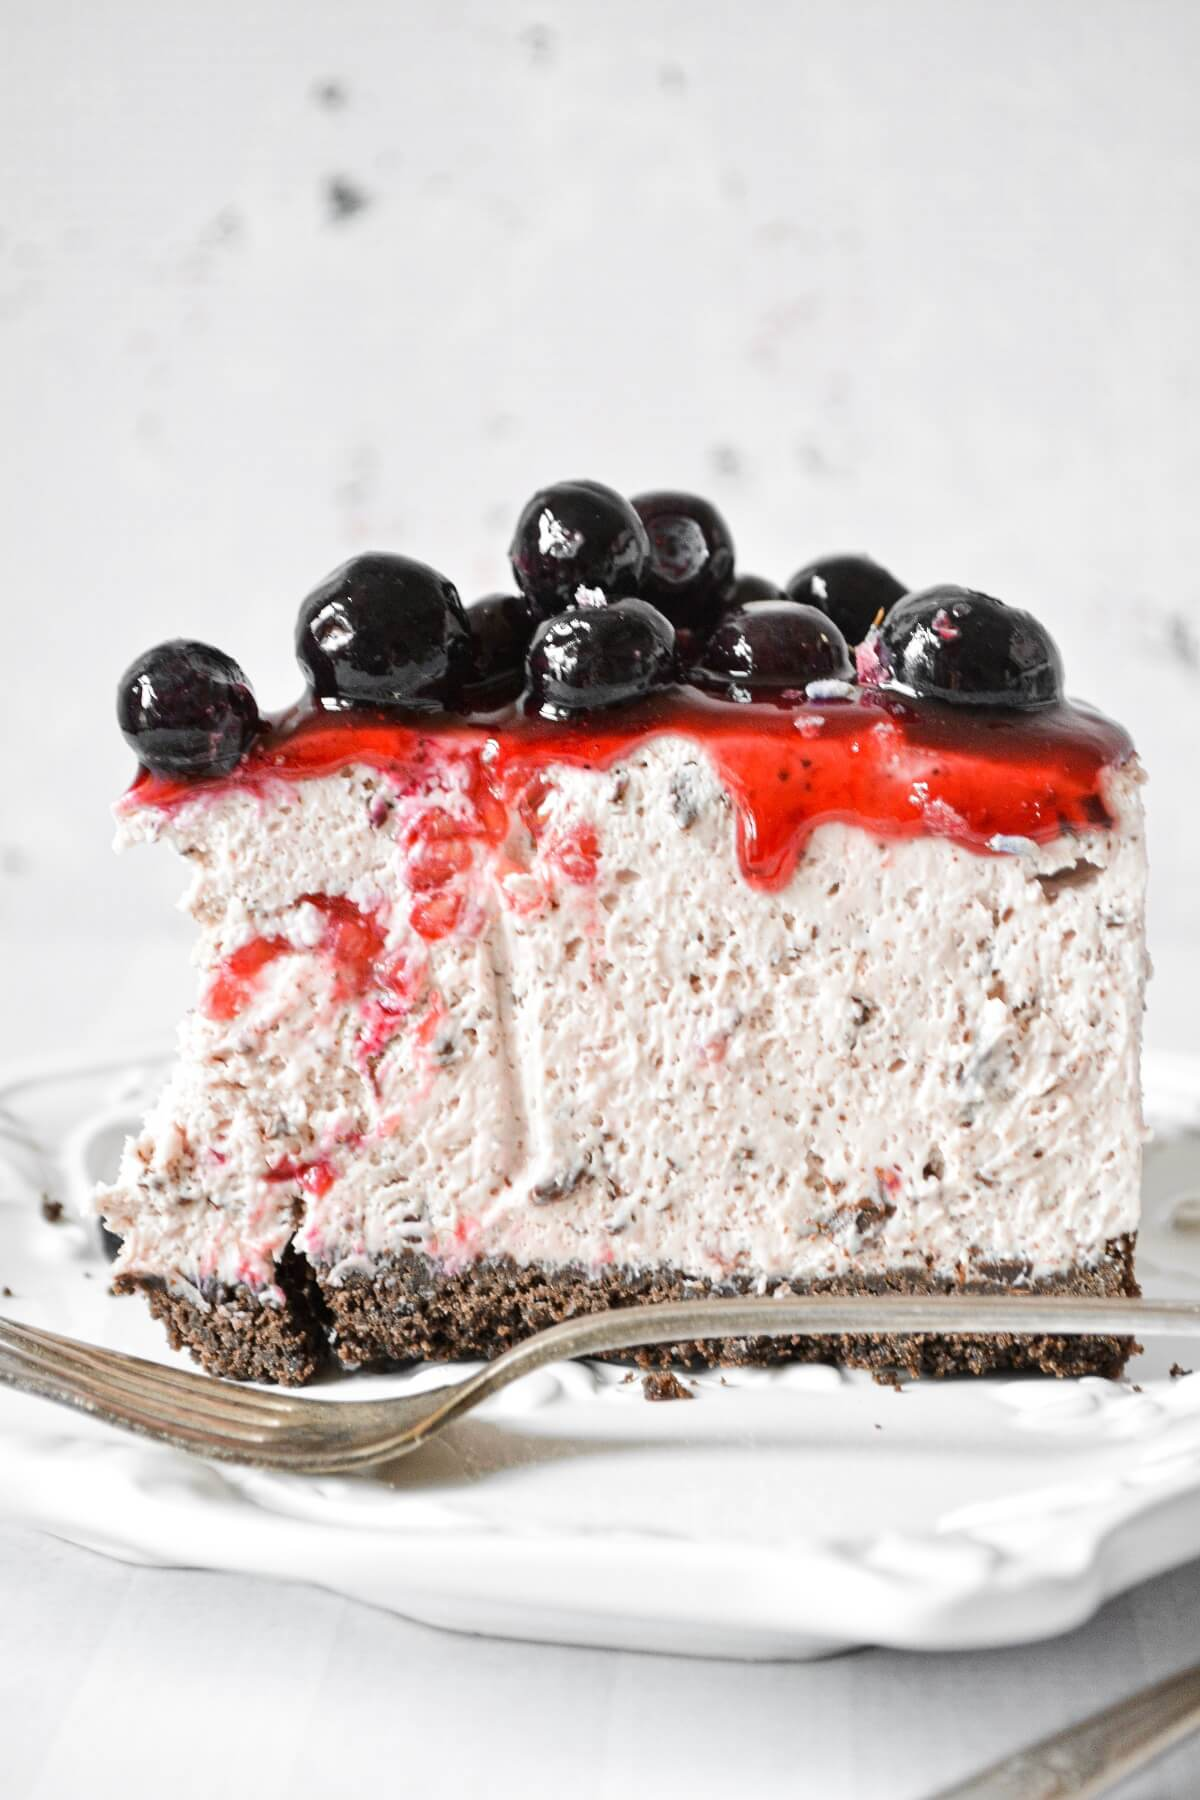 Raspberry blueberry cheesecake, with a chocolate crust, topped with fruit compote.